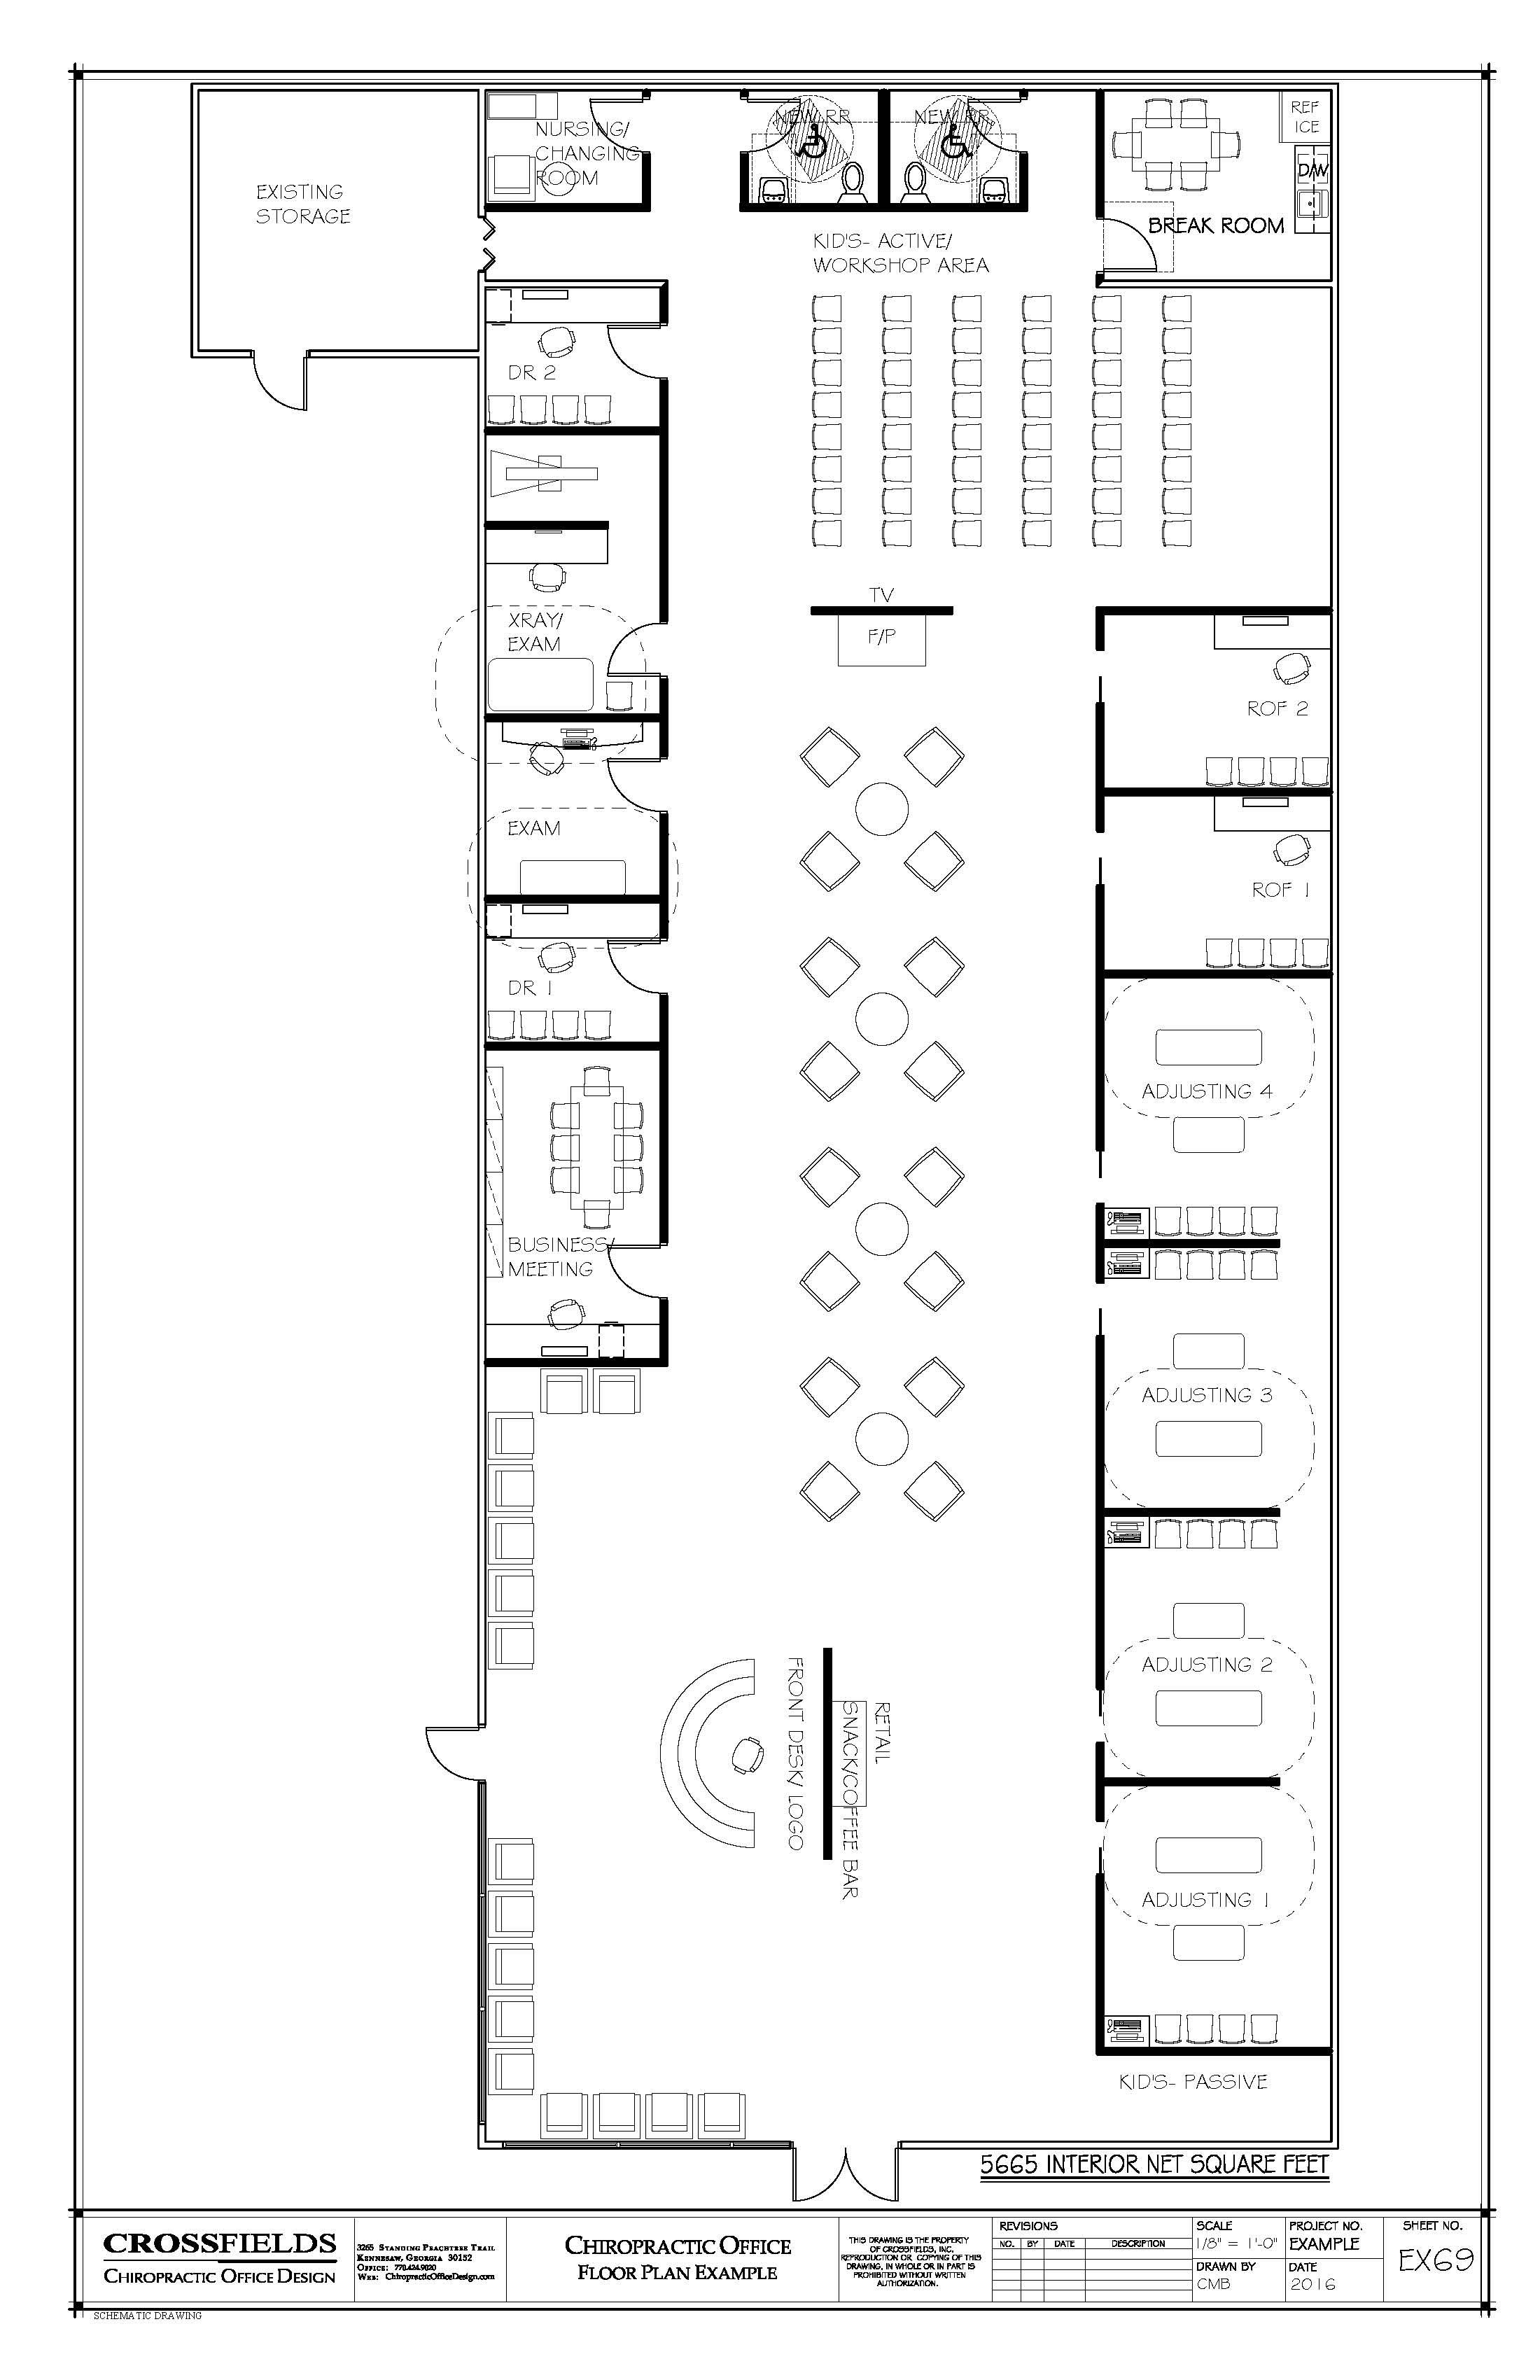 Sample floor plan with x ray and semi open adjusting areas for Office floor plan samples